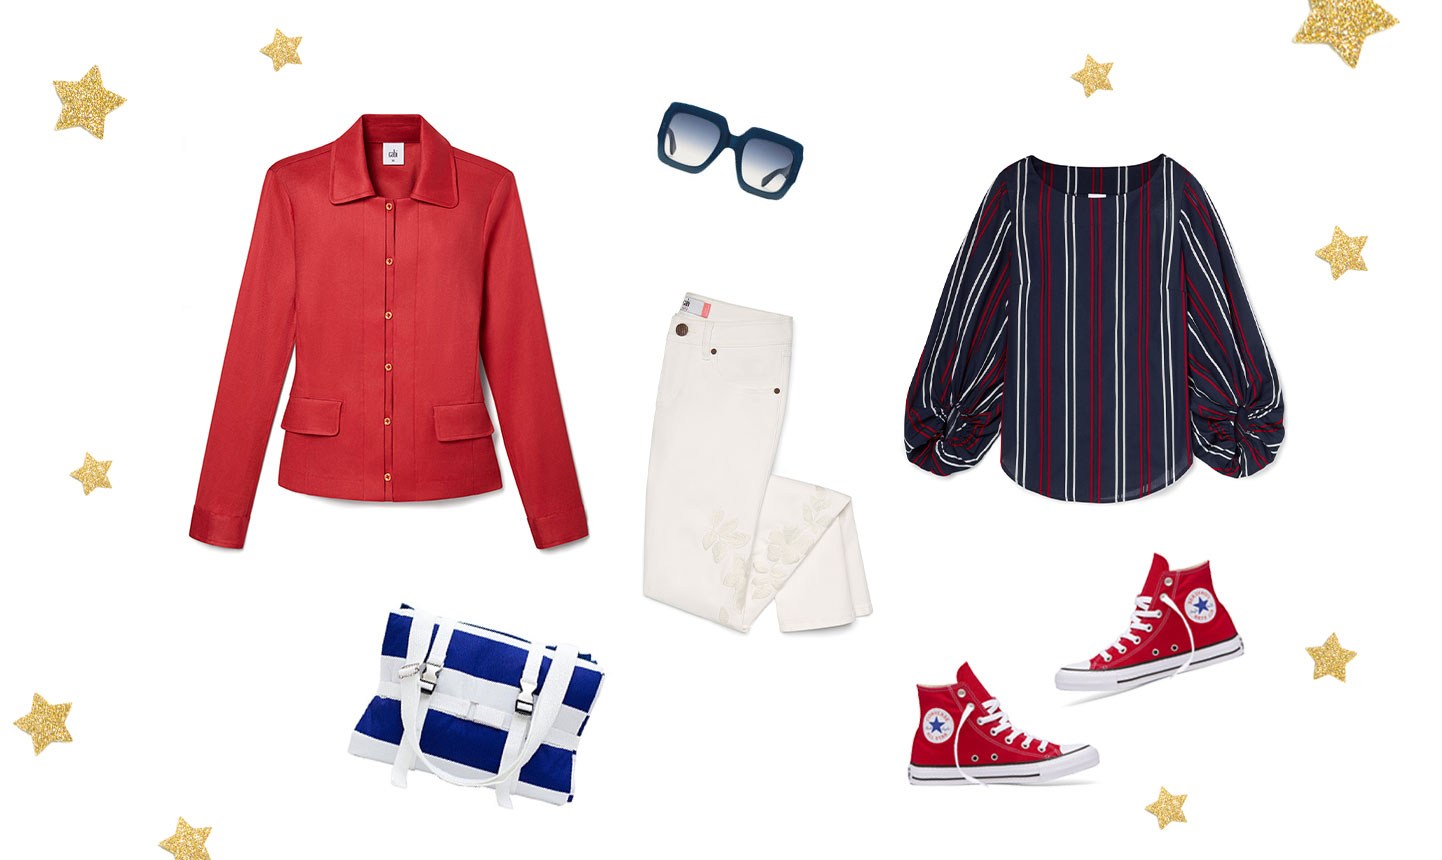 a7adadd721 Fourth Of July Outfits That Sparkle Cabi Spring 2019 Collection